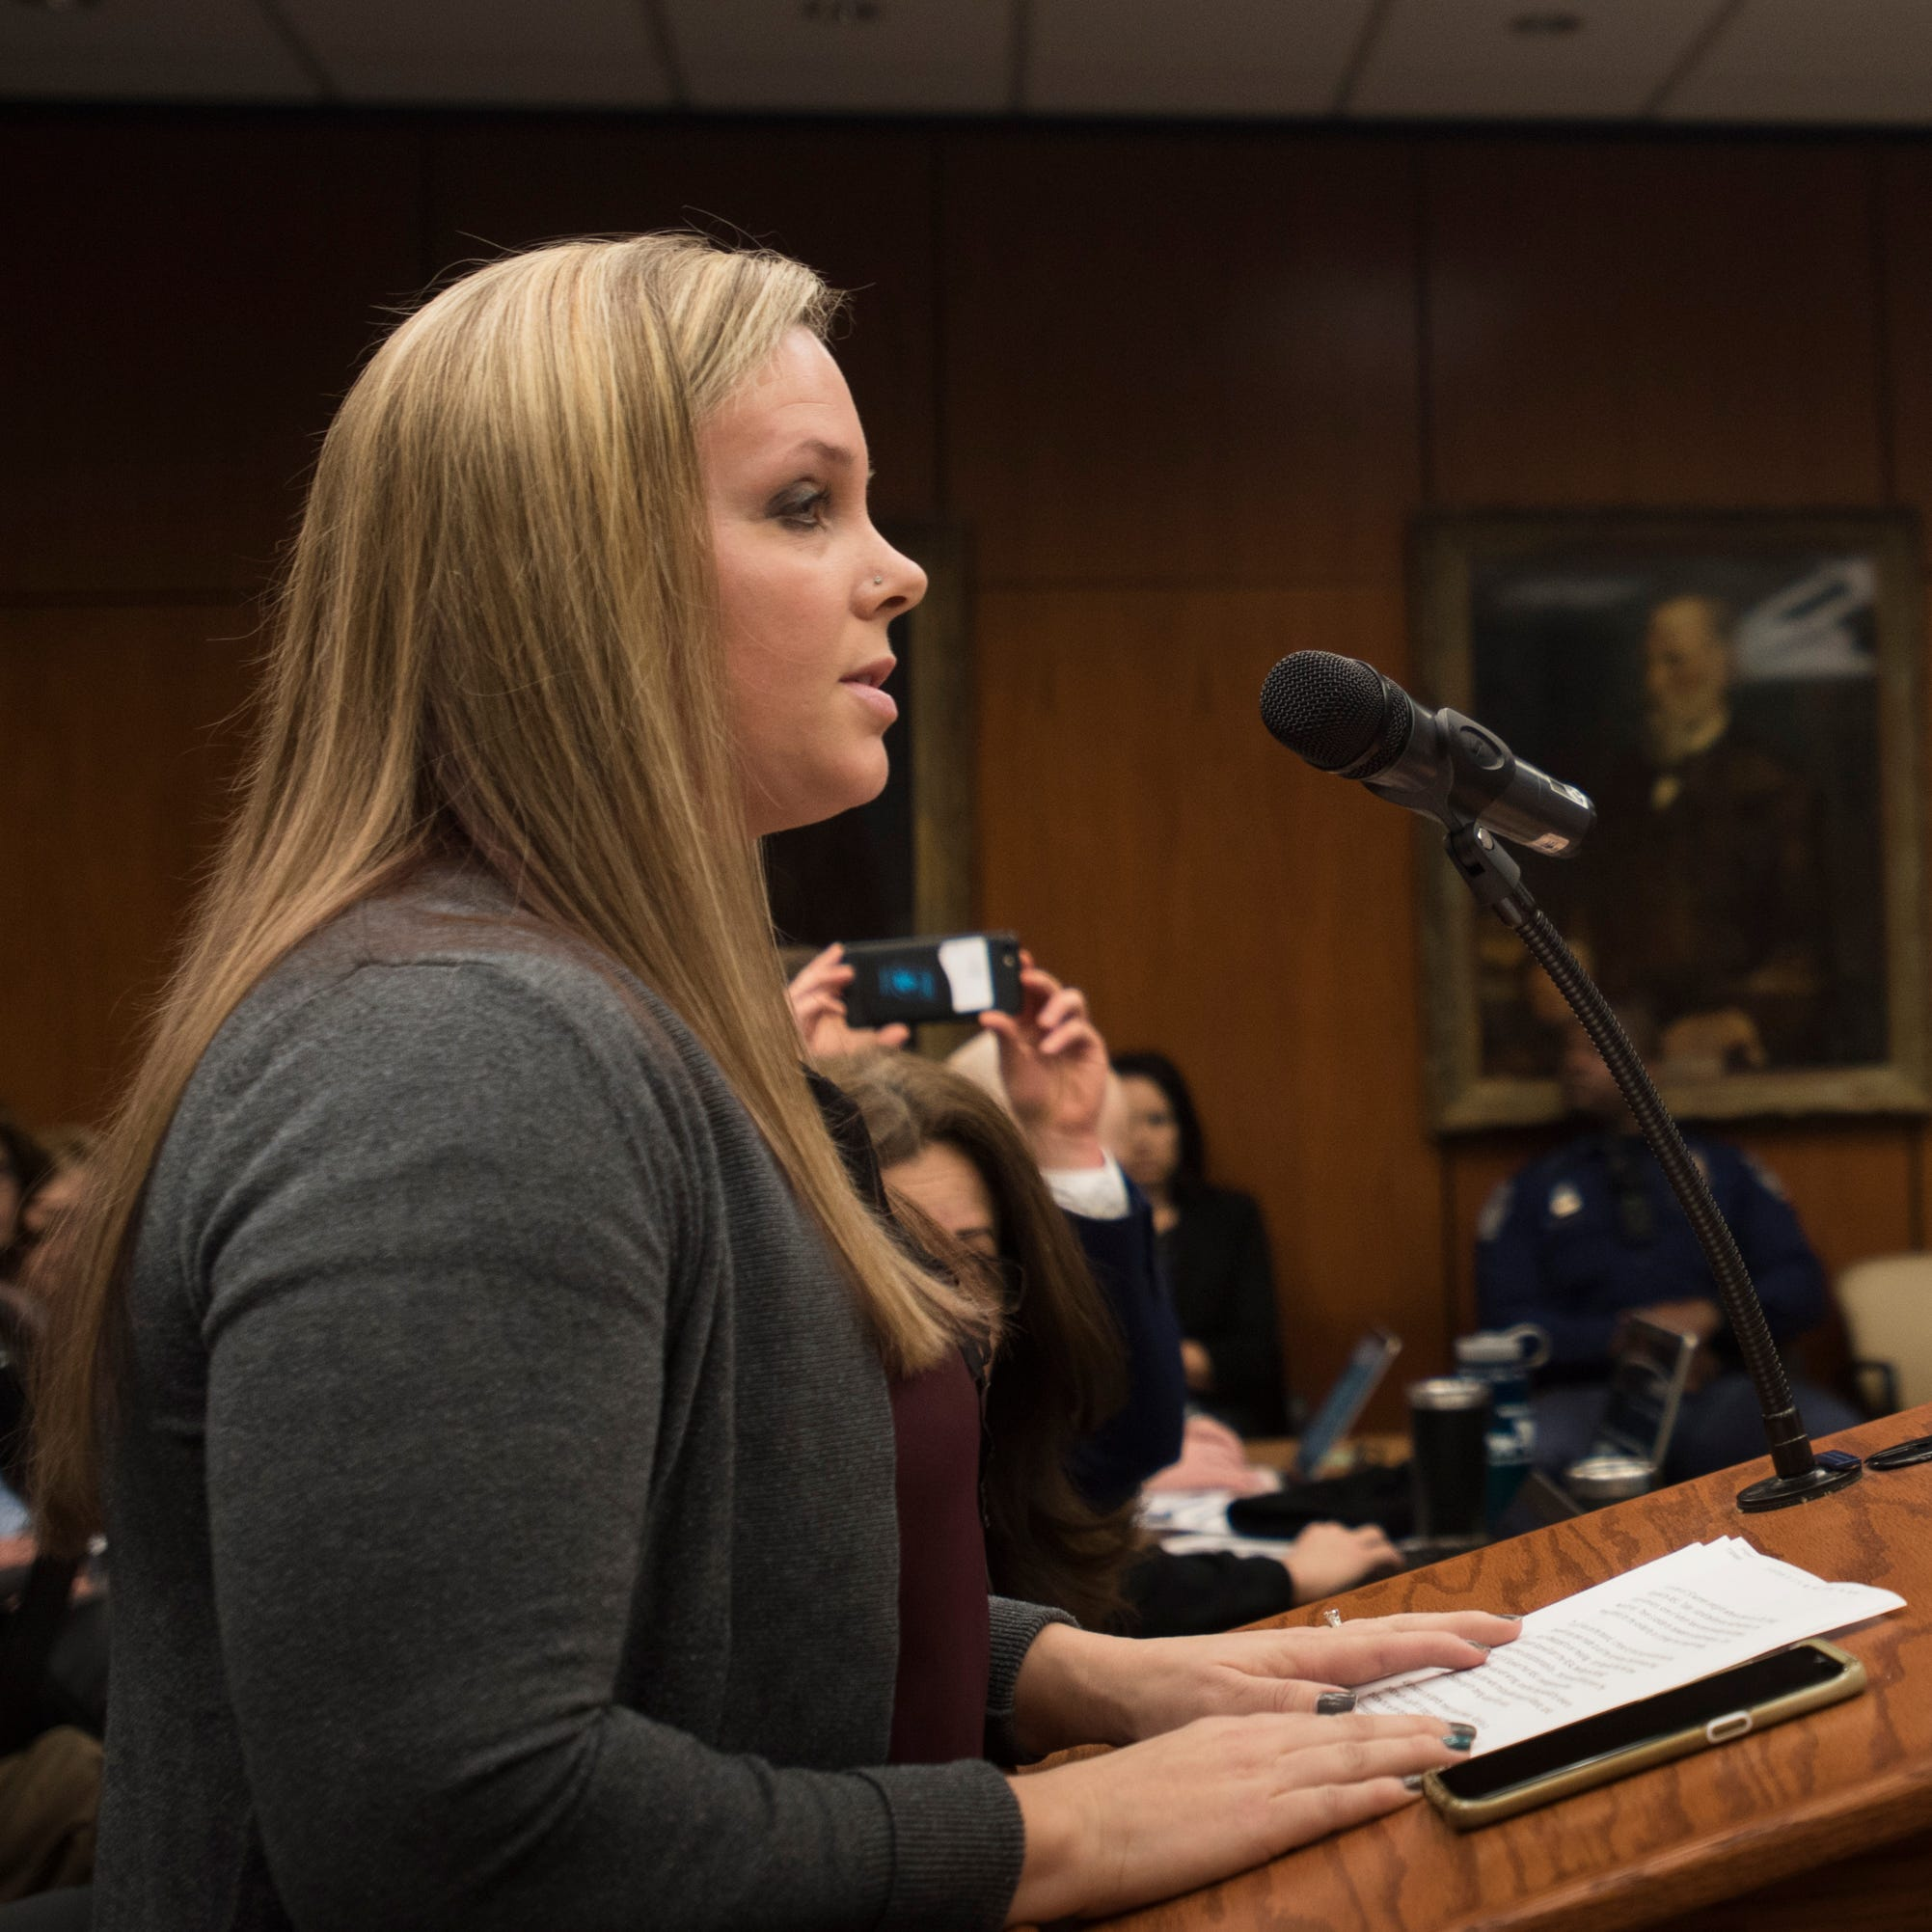 Attorneys want state to investigate MSU's treatment of Larry Nassar victims